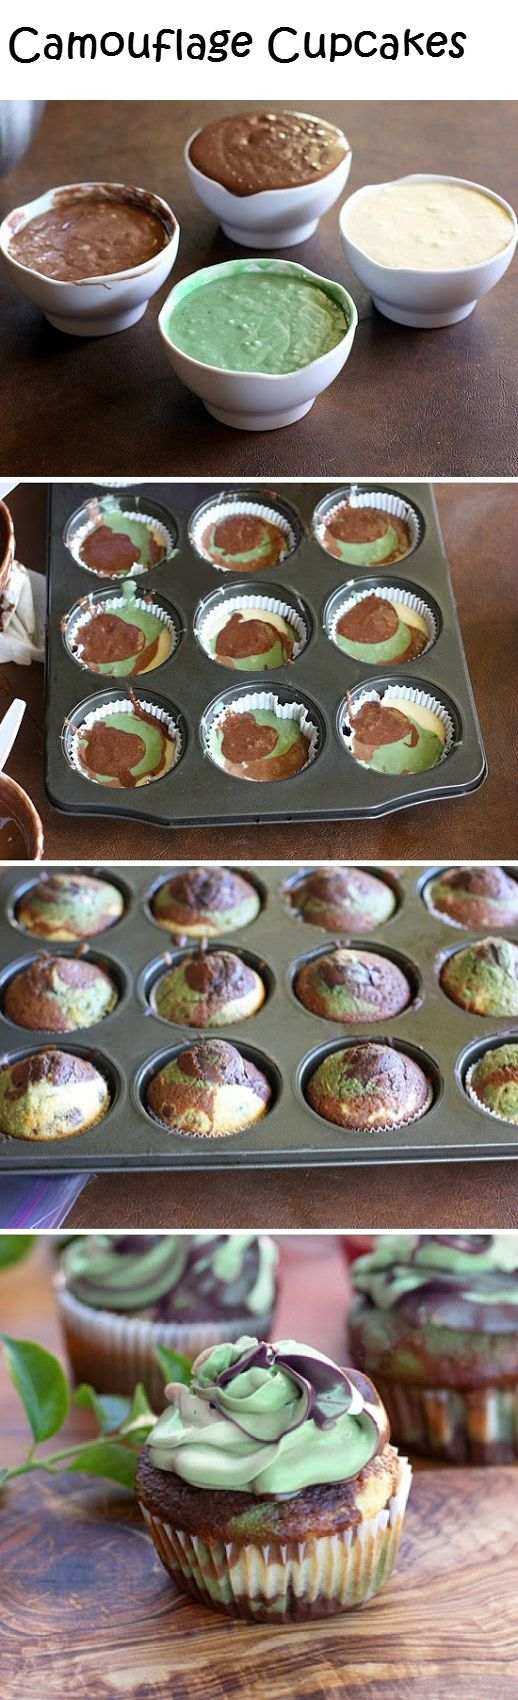 20 Cupcake Ideas That Will Keep You Nom Nomming